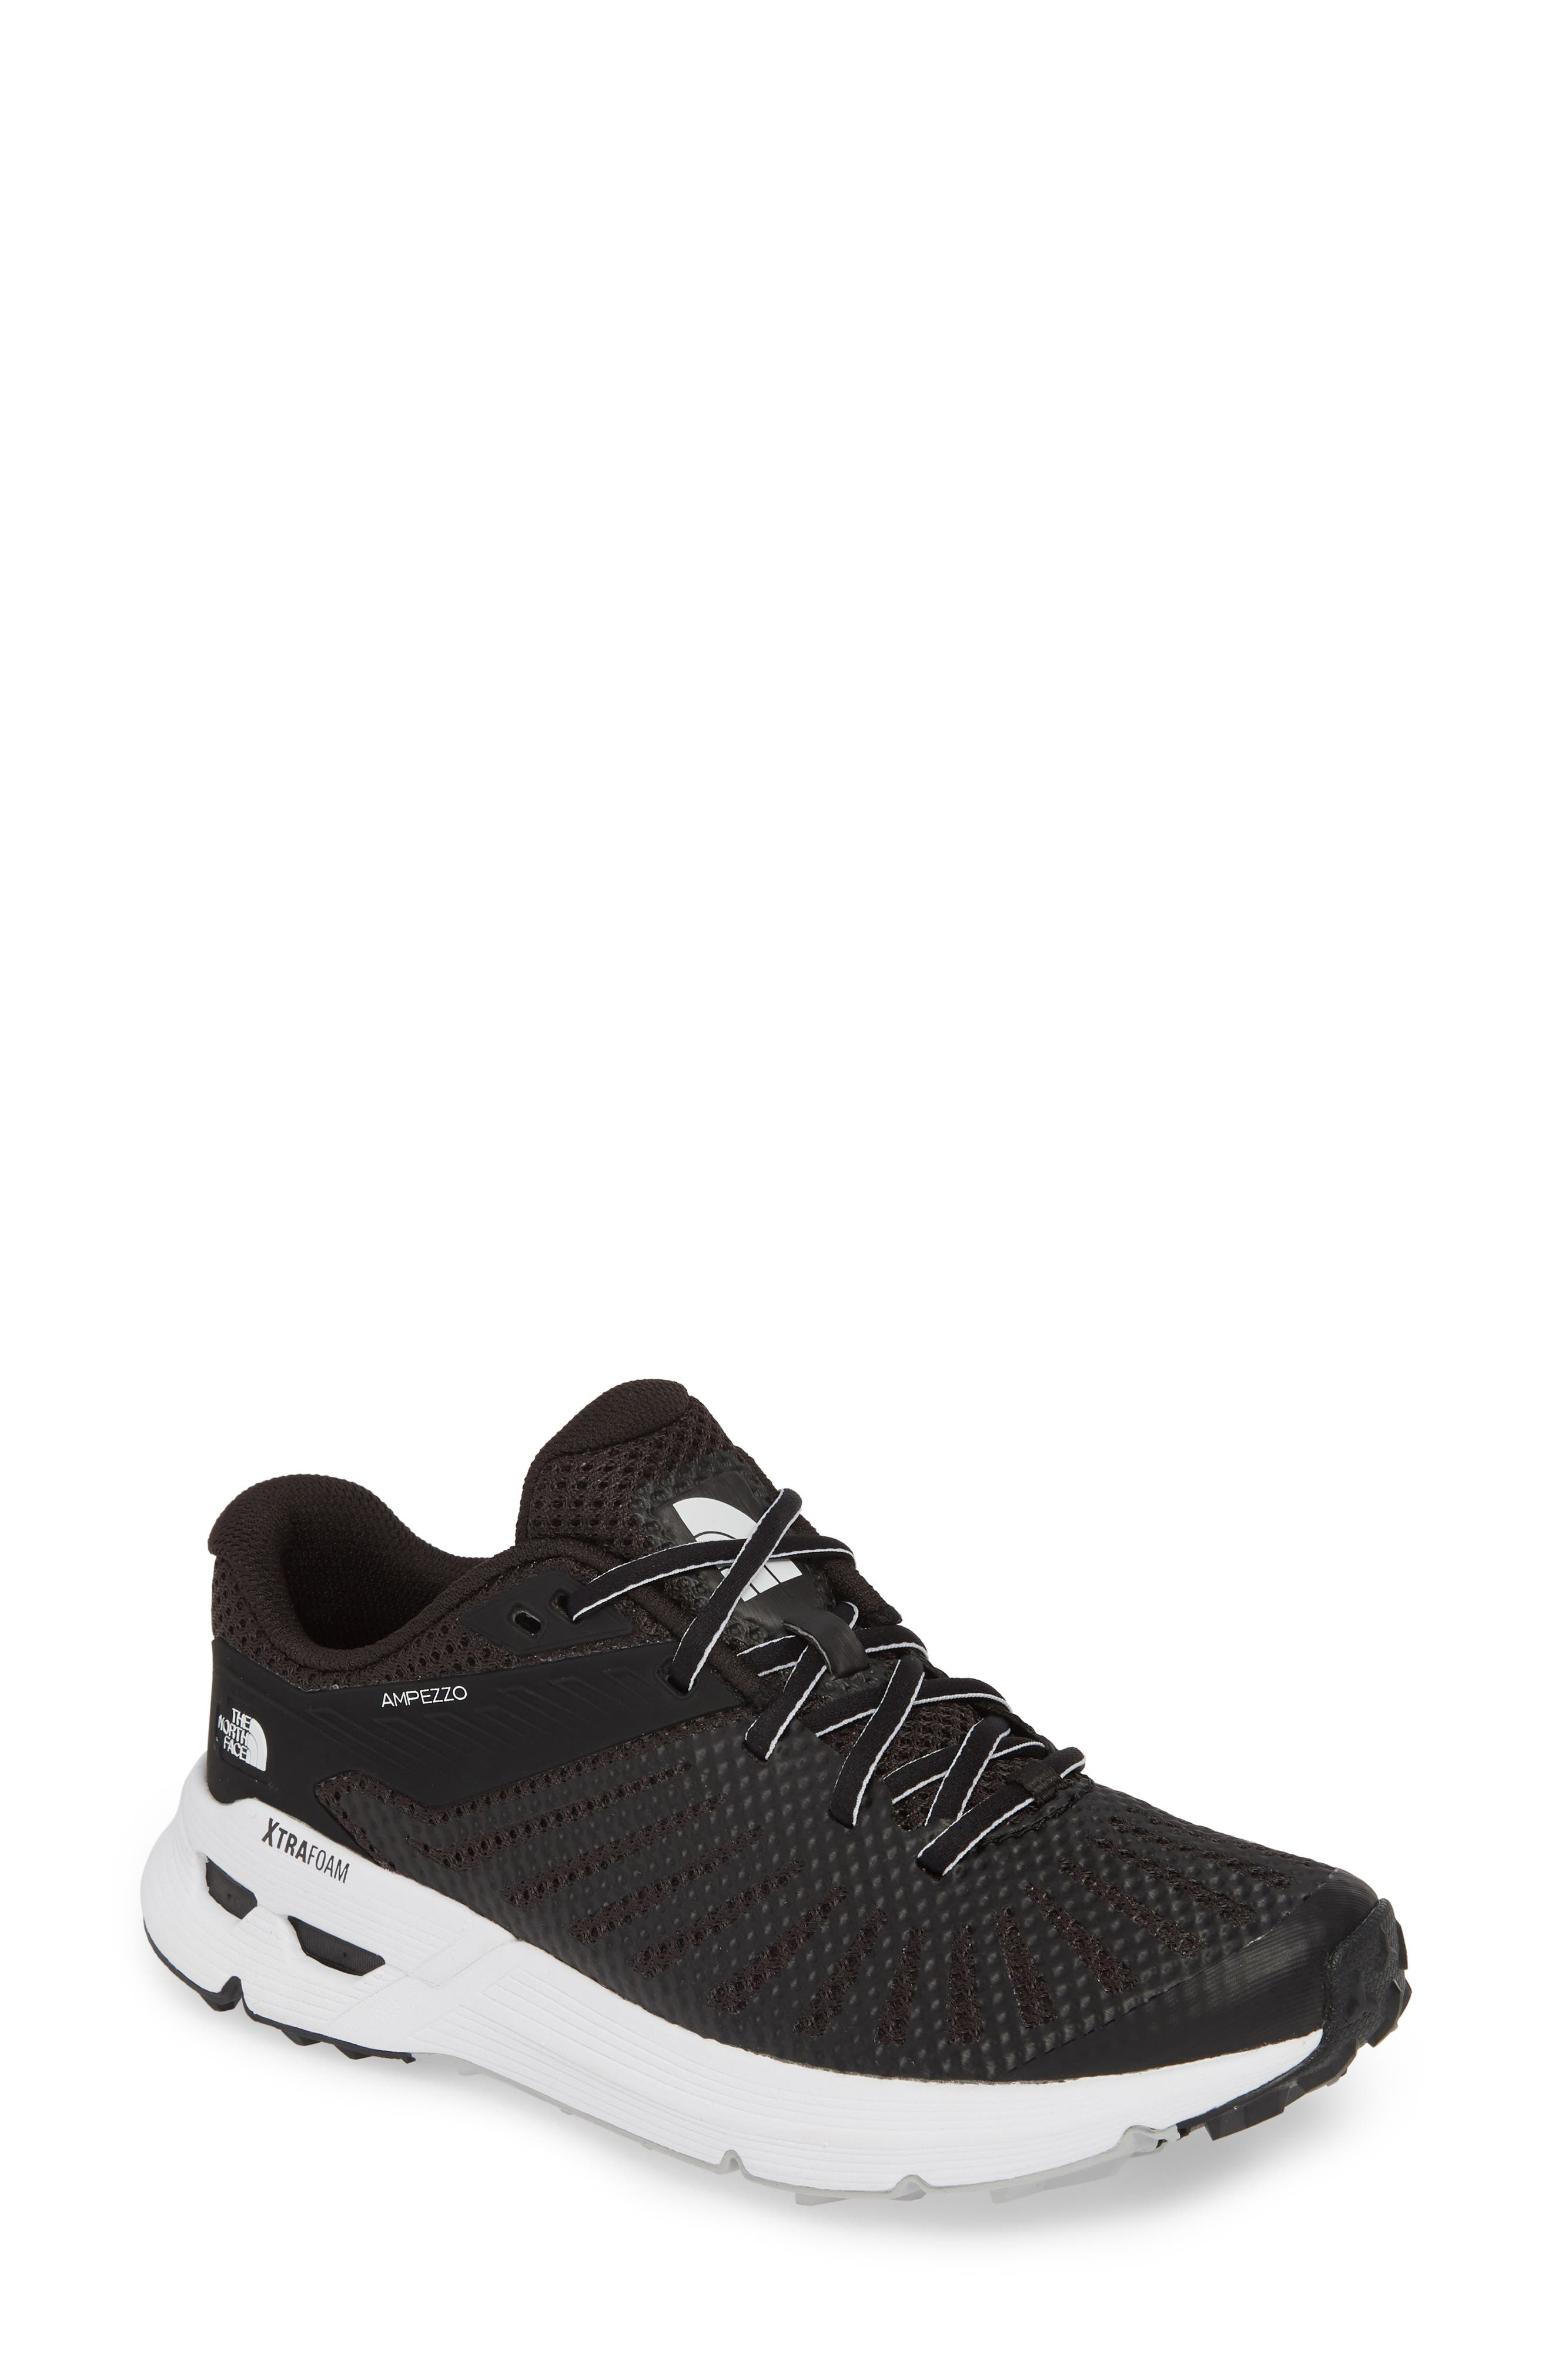 38a25519d2b2 The North Face Ampezzo Running Shoe- Black